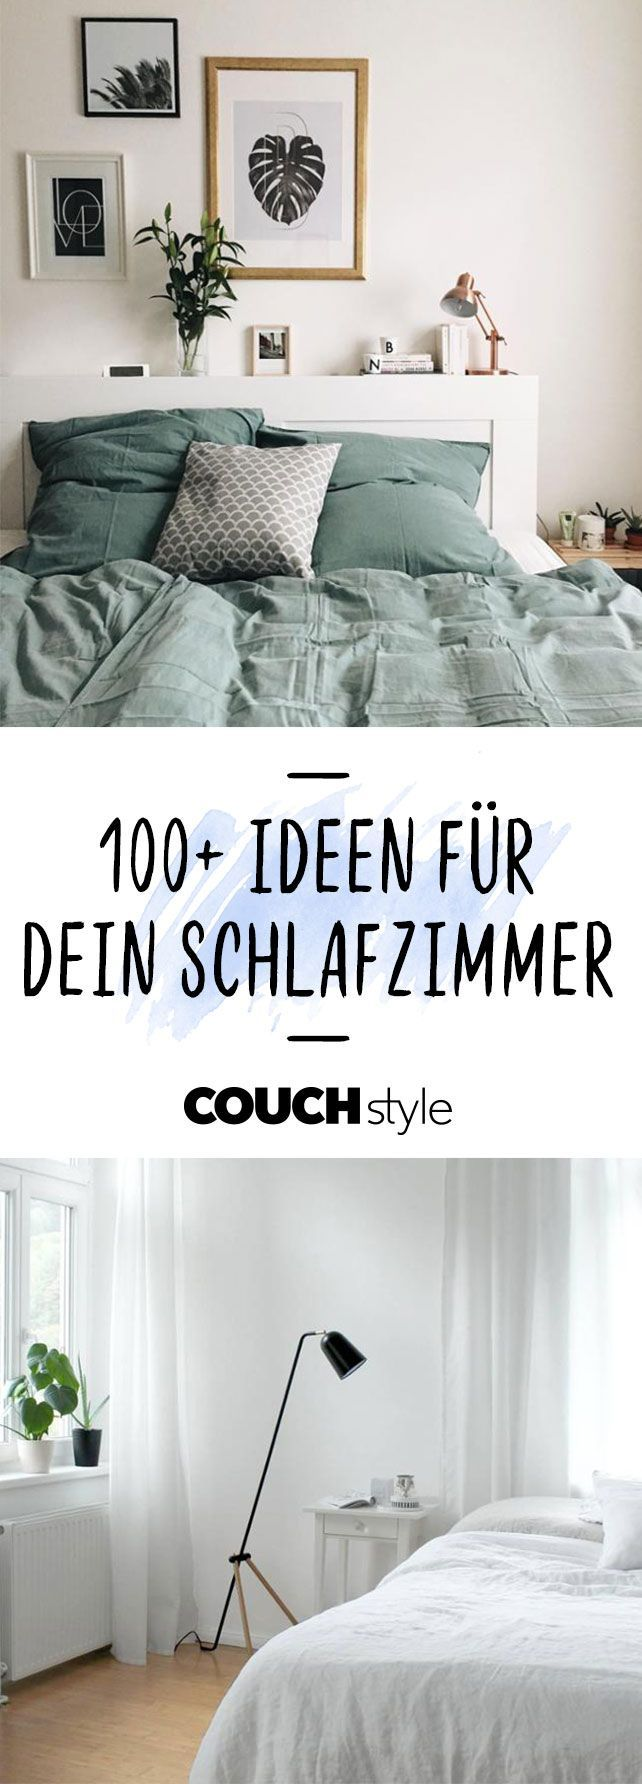 schlafzimmer bilder m bel f r die wohlf hloase lovely diys diy blog ber deko geschenke. Black Bedroom Furniture Sets. Home Design Ideas